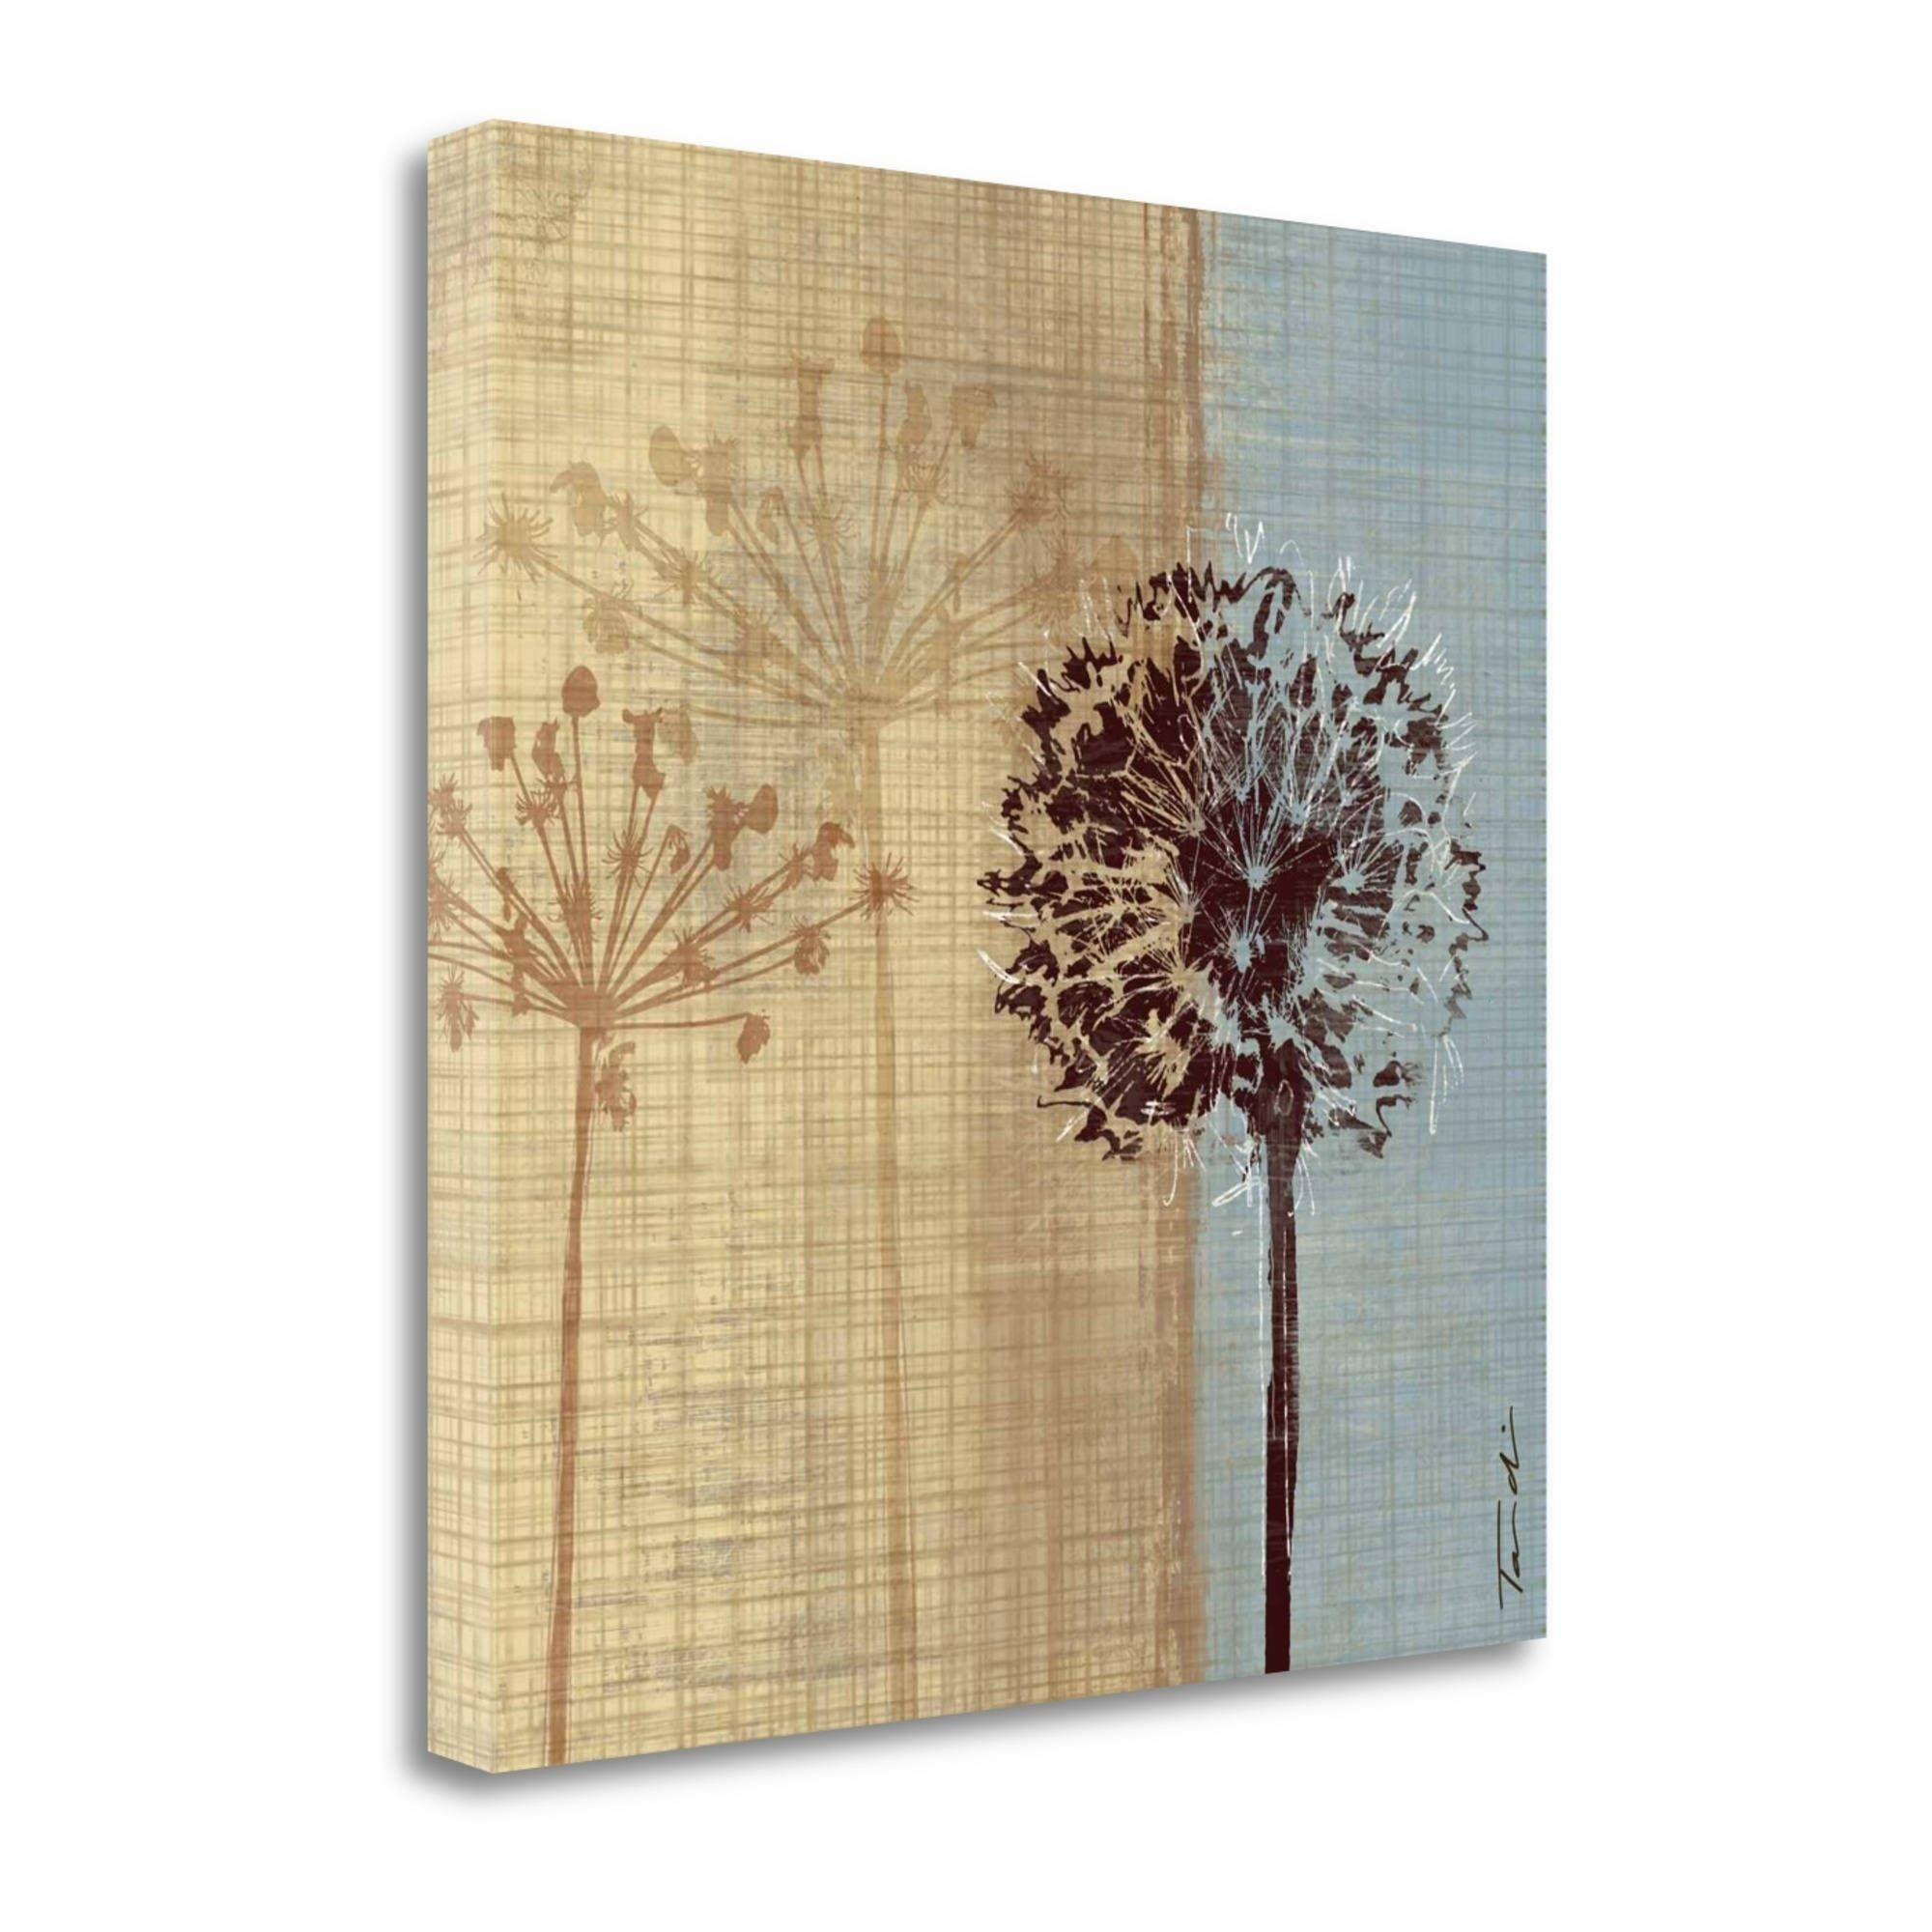 Midwest Silhouette In The Breeze By Tandi Venter, Green | Products ...